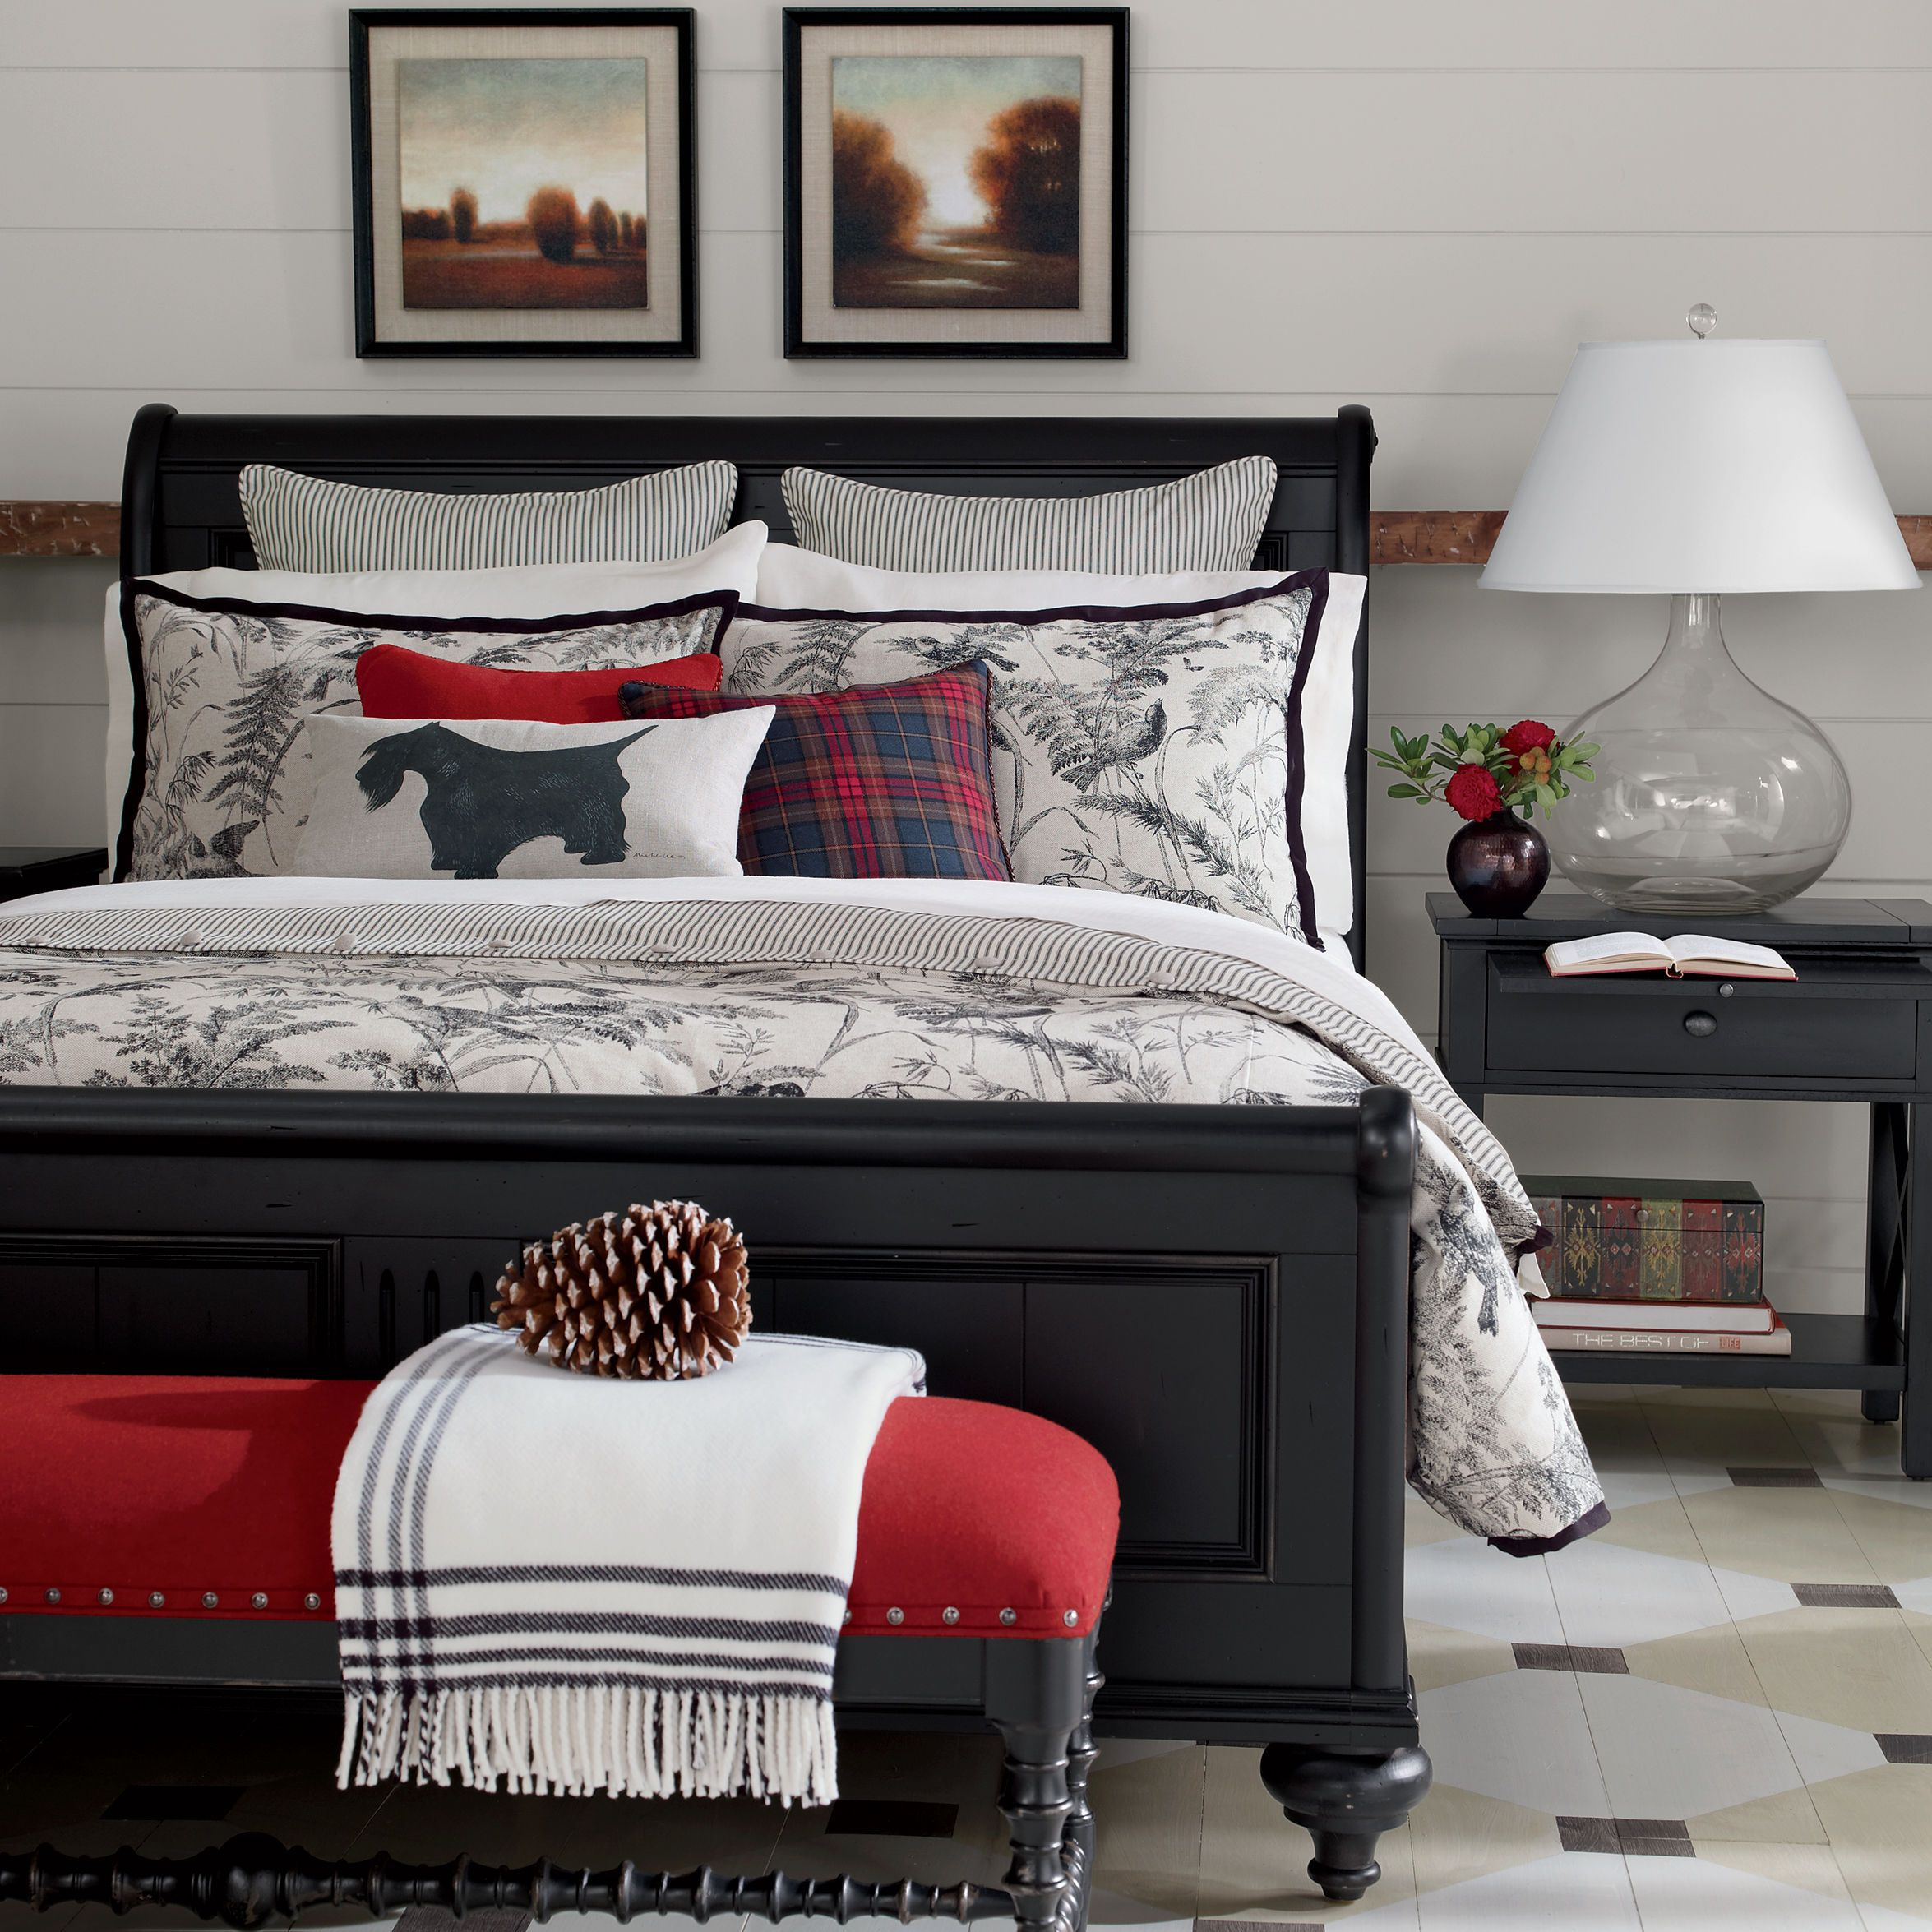 Superior Vintage Country Bedroom. Black And White Bedroom. Ethan Allen Furniture.  Robyn Bed   Photo